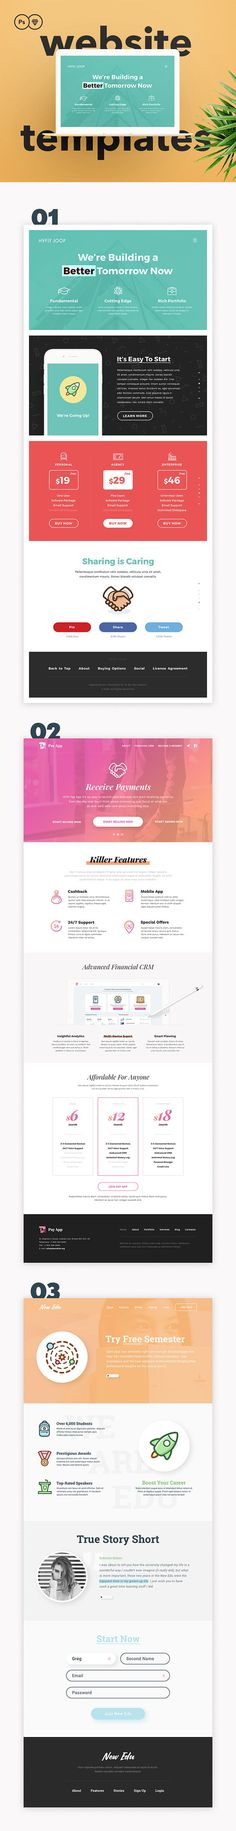 Capitalist Website Templates (Sketch & PSD) by PixelBuddha